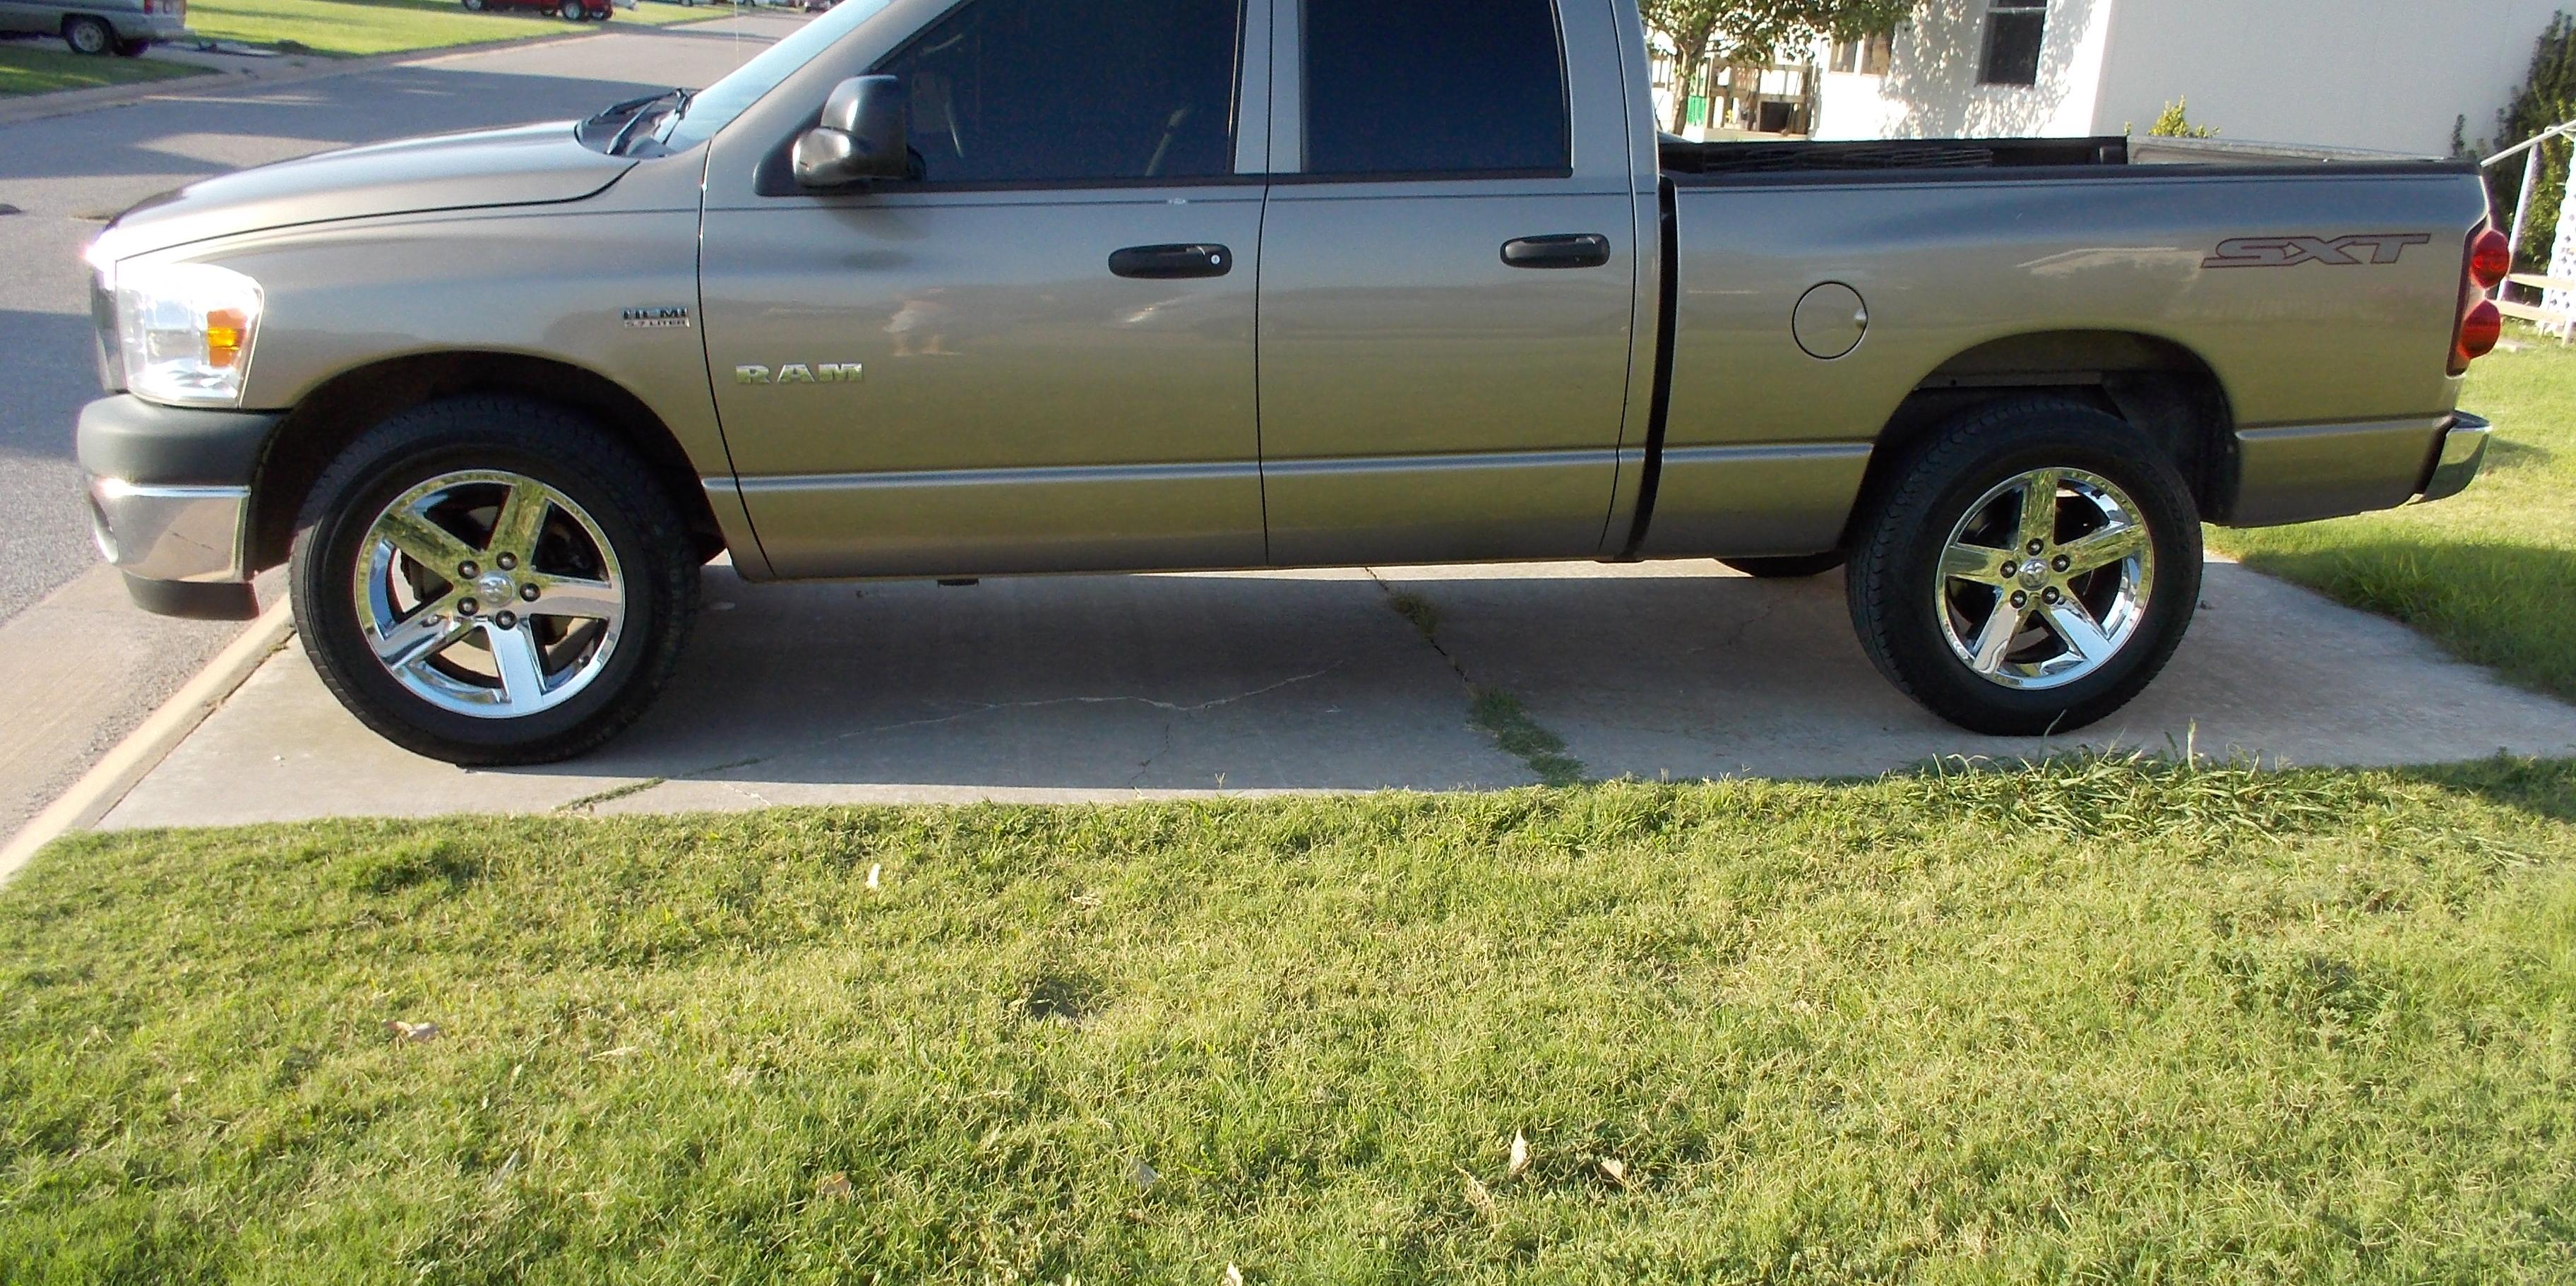 ram dodge forums bars car steps side original and truck showthread step body lift after for dodgetalk raising